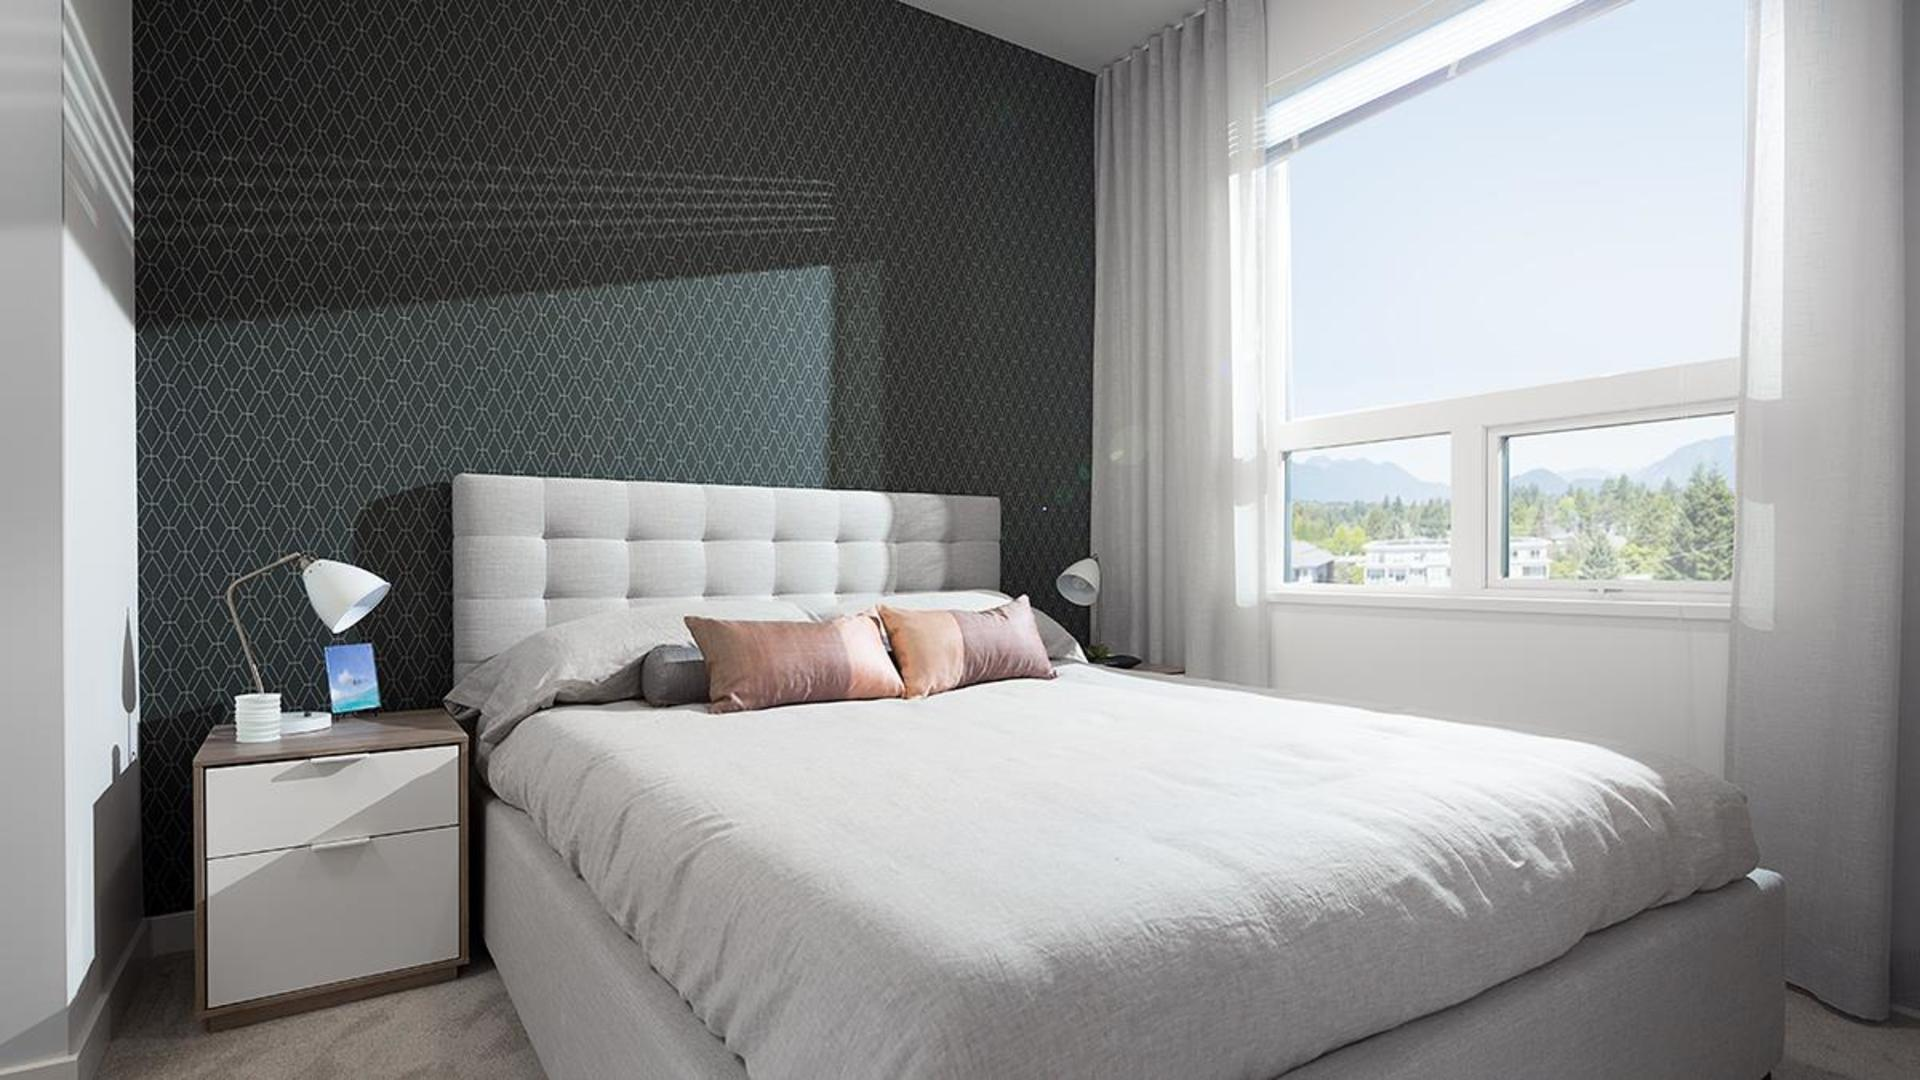 2017_02_10_02_47_16_bedroom_sun at 621 Regan Avenue, Coquitlam West, Coquitlam